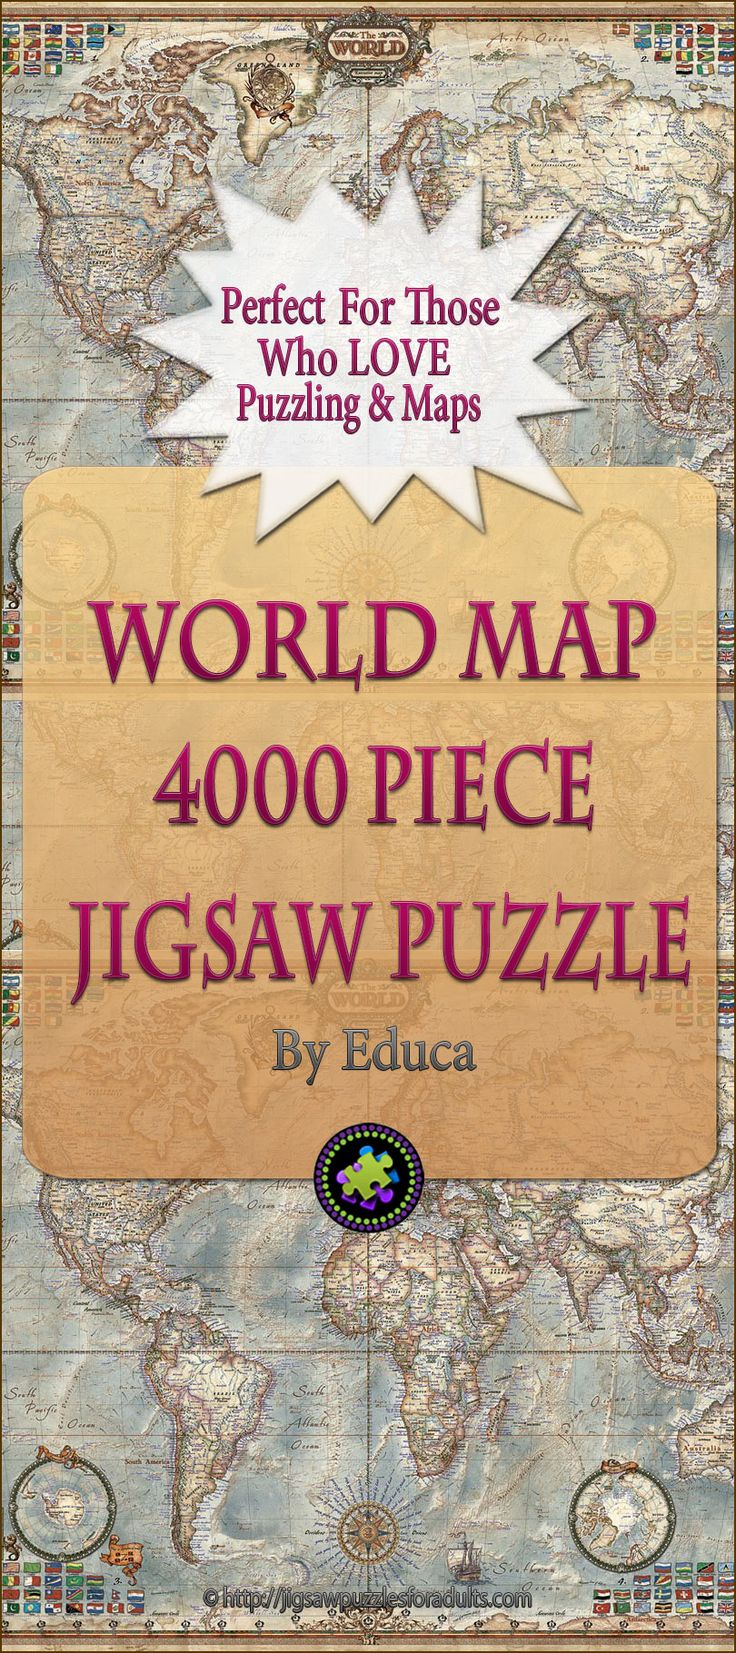 This 4000 piece puzzle world map by Educa is not only challenging, it fun and educational! It's the perfect for anyone who loves maps and puzzling. This world map is not just beautiful it's informative with an excellent amount of detail.